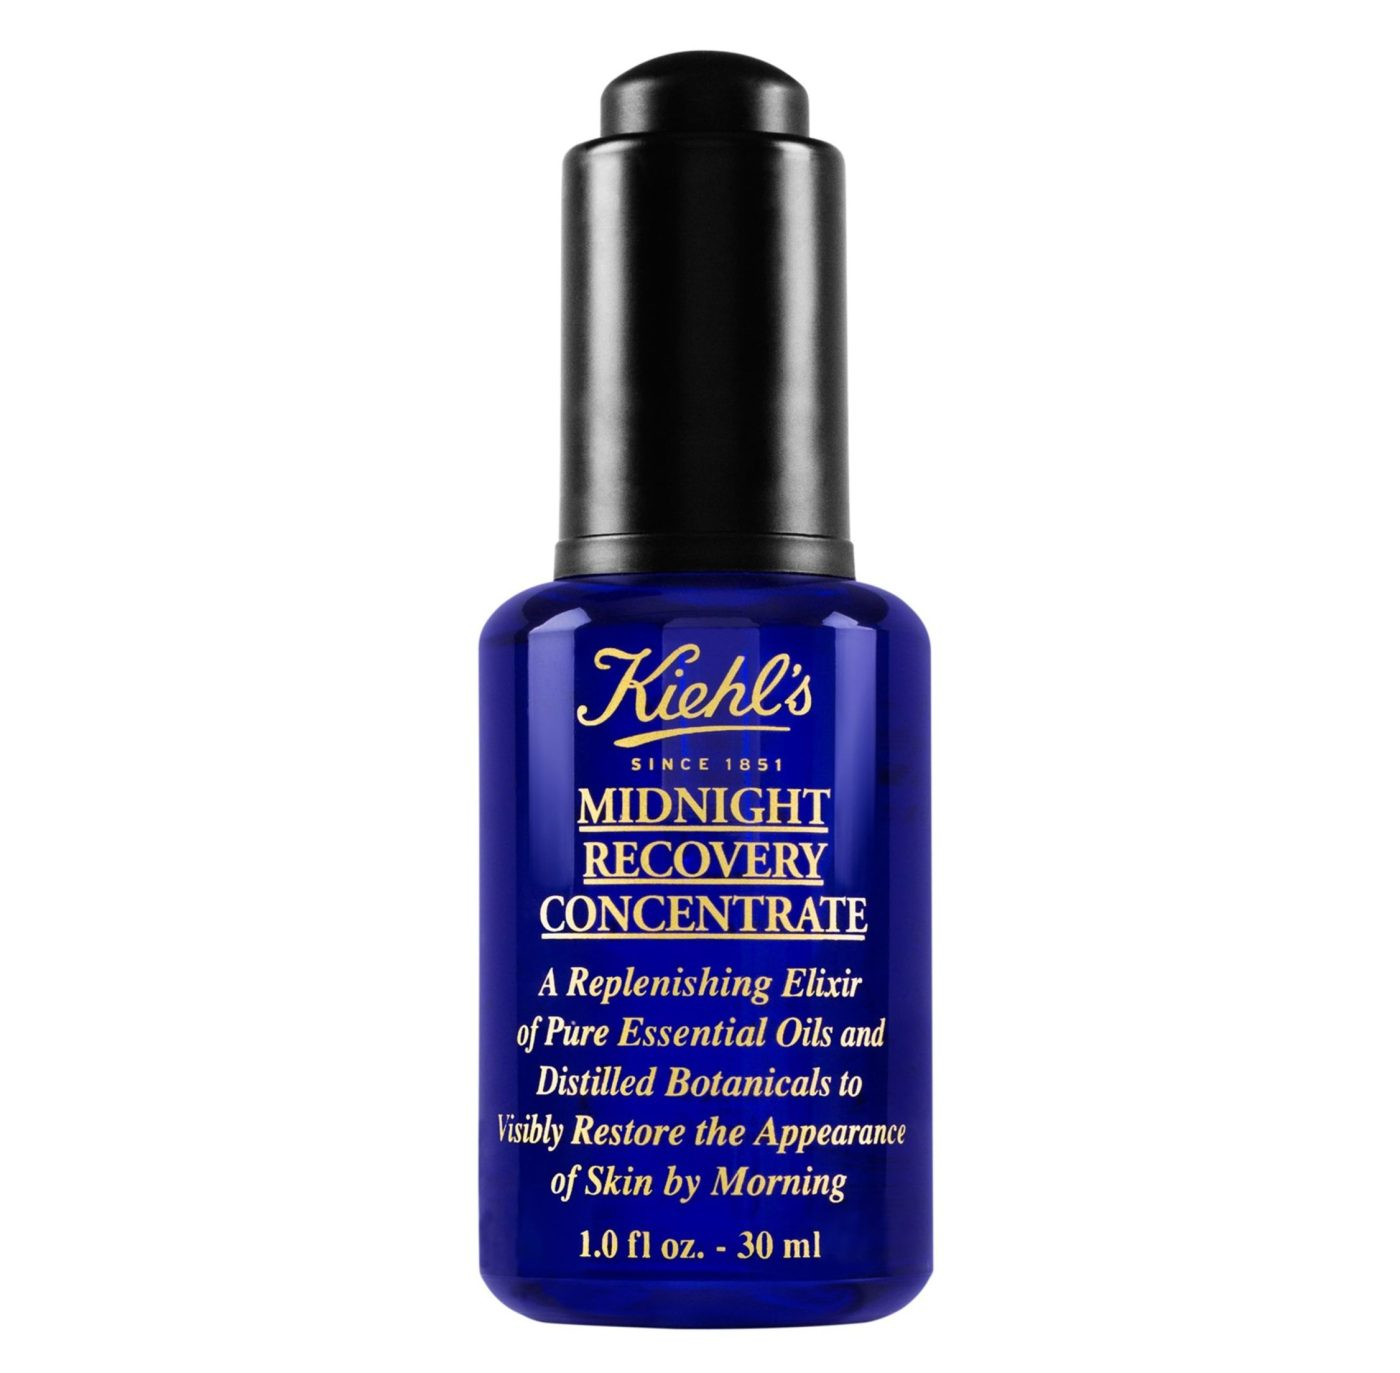 Kiehl's Since 1851 Midnight Recovery Concentrate Face Oil